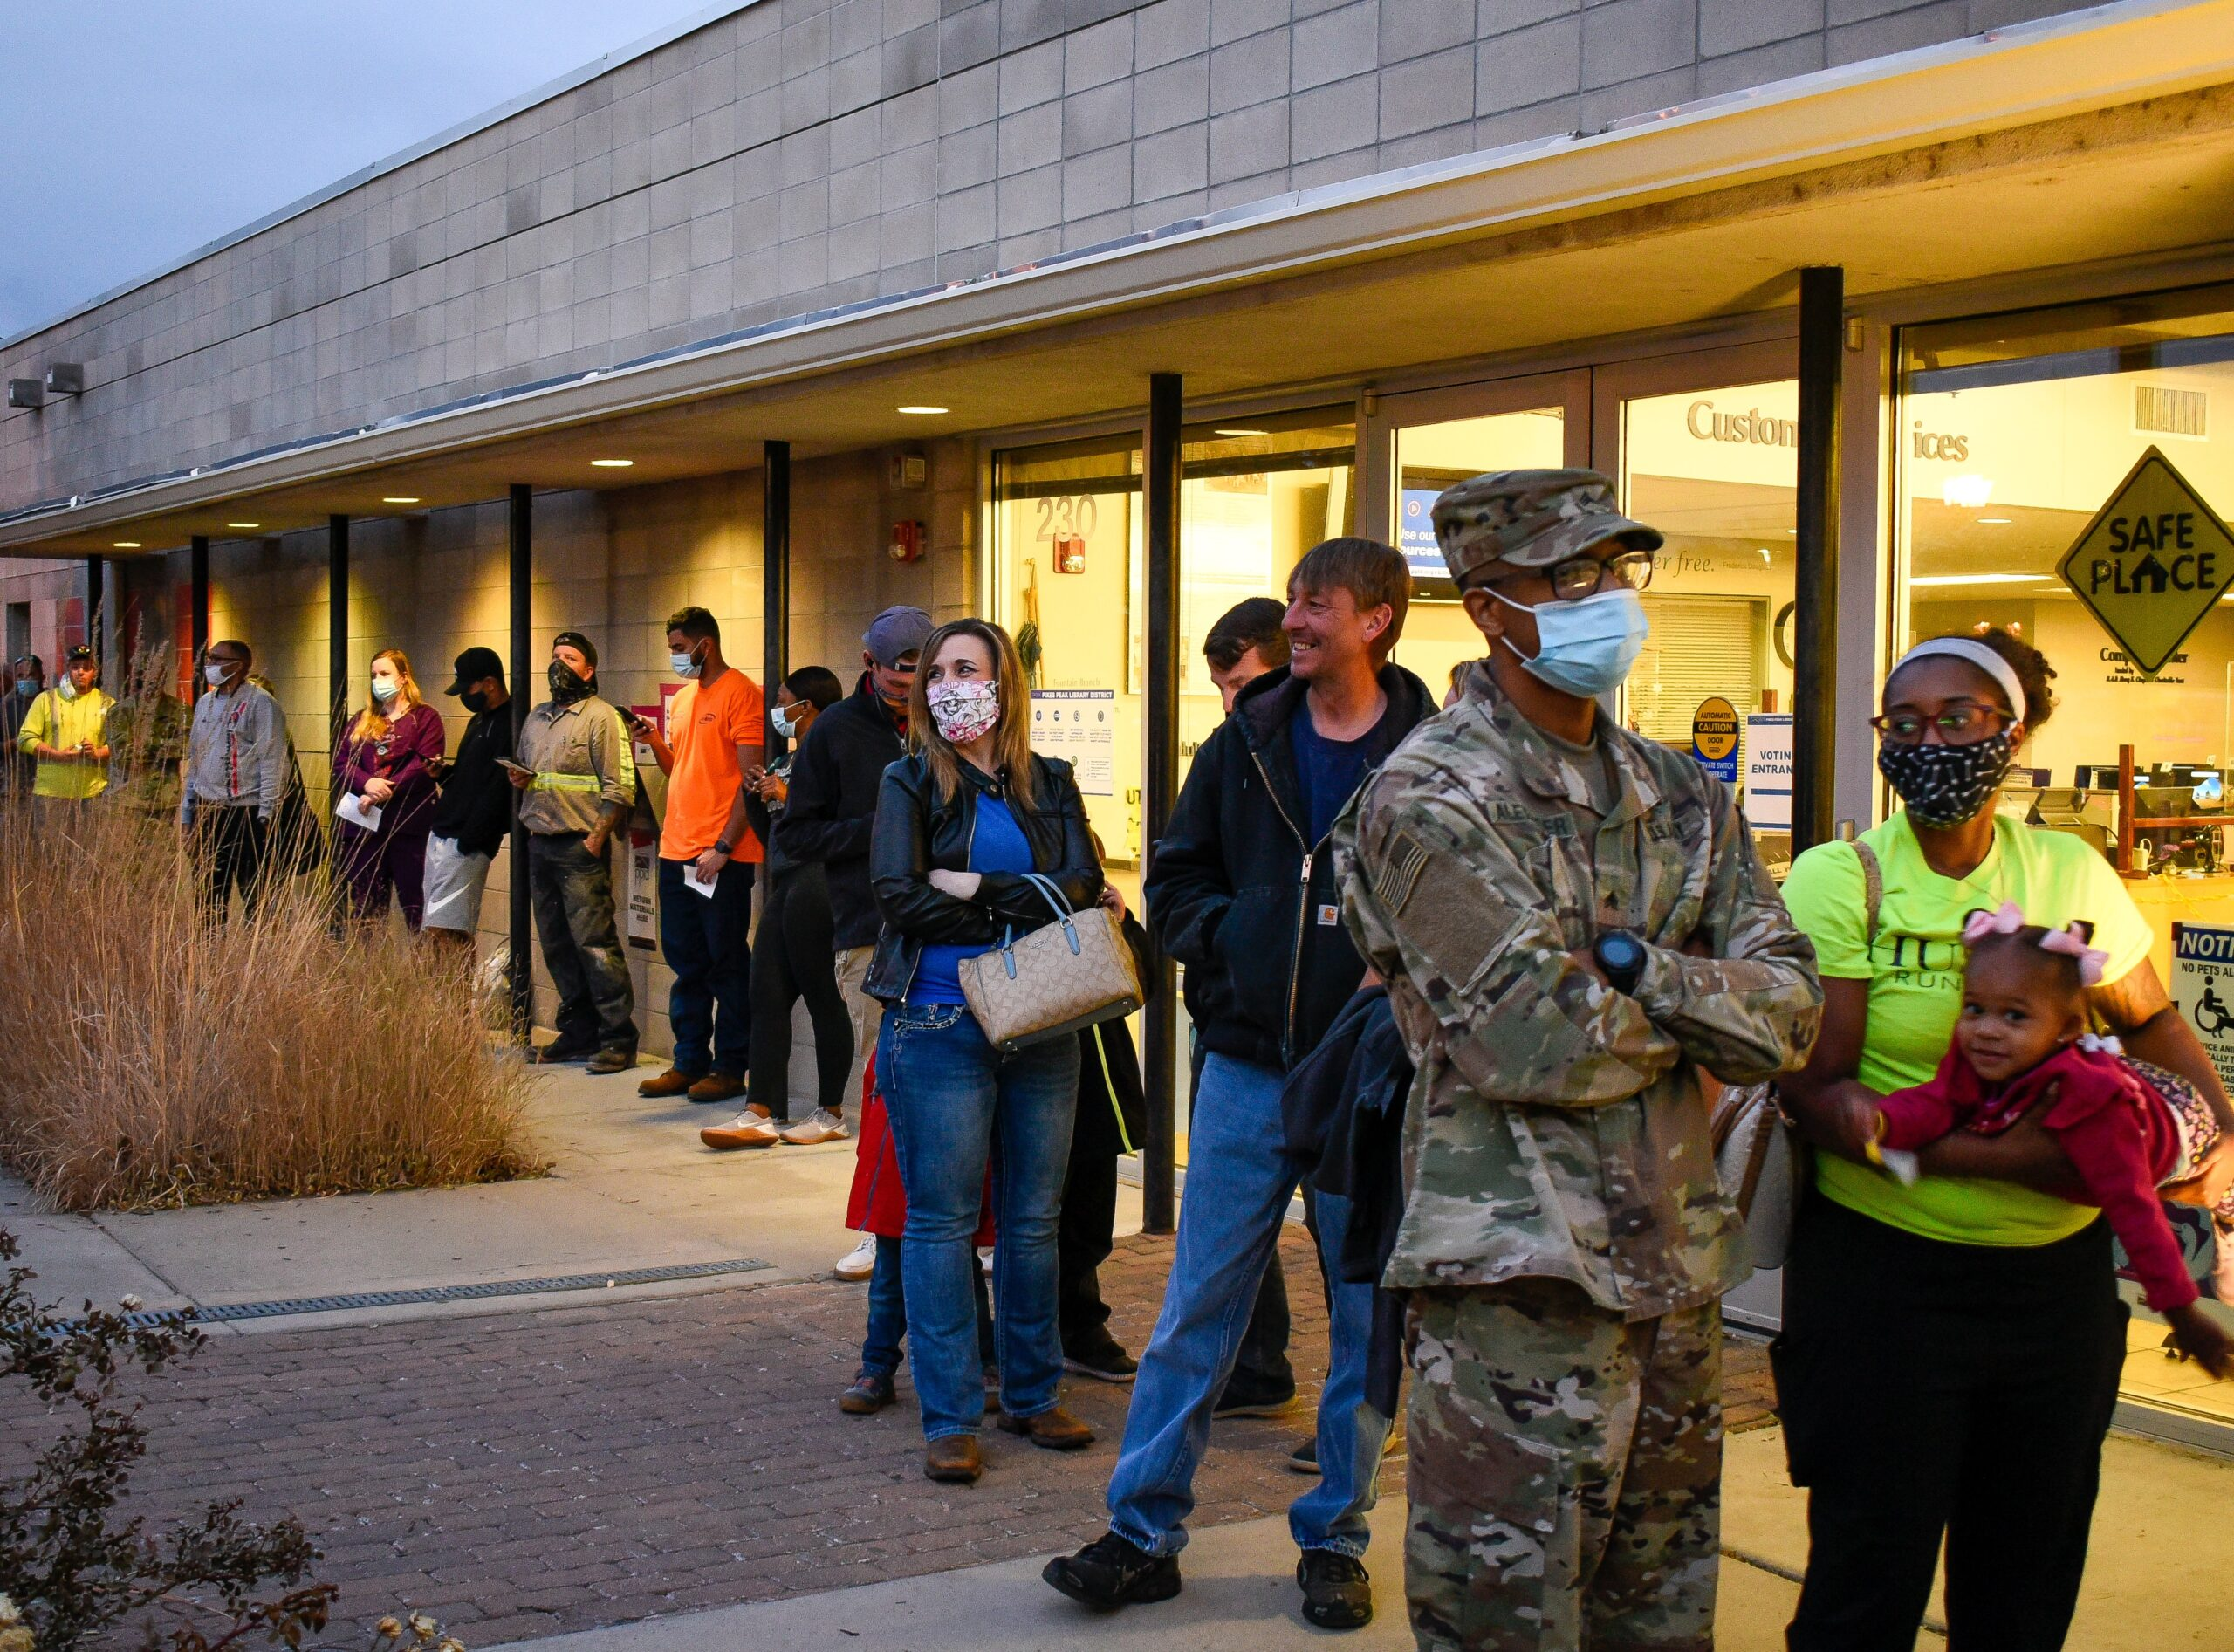 Army Sergeant Trey Alexander, his wife Jasmine and daughter Aria, 2, wait in line at the Fountain Library in Fountain, Colo. along with several others to vote in the 2020 election. A line wrapped around the building and some voters waited patiently from 30 minutes to an hour and a half.